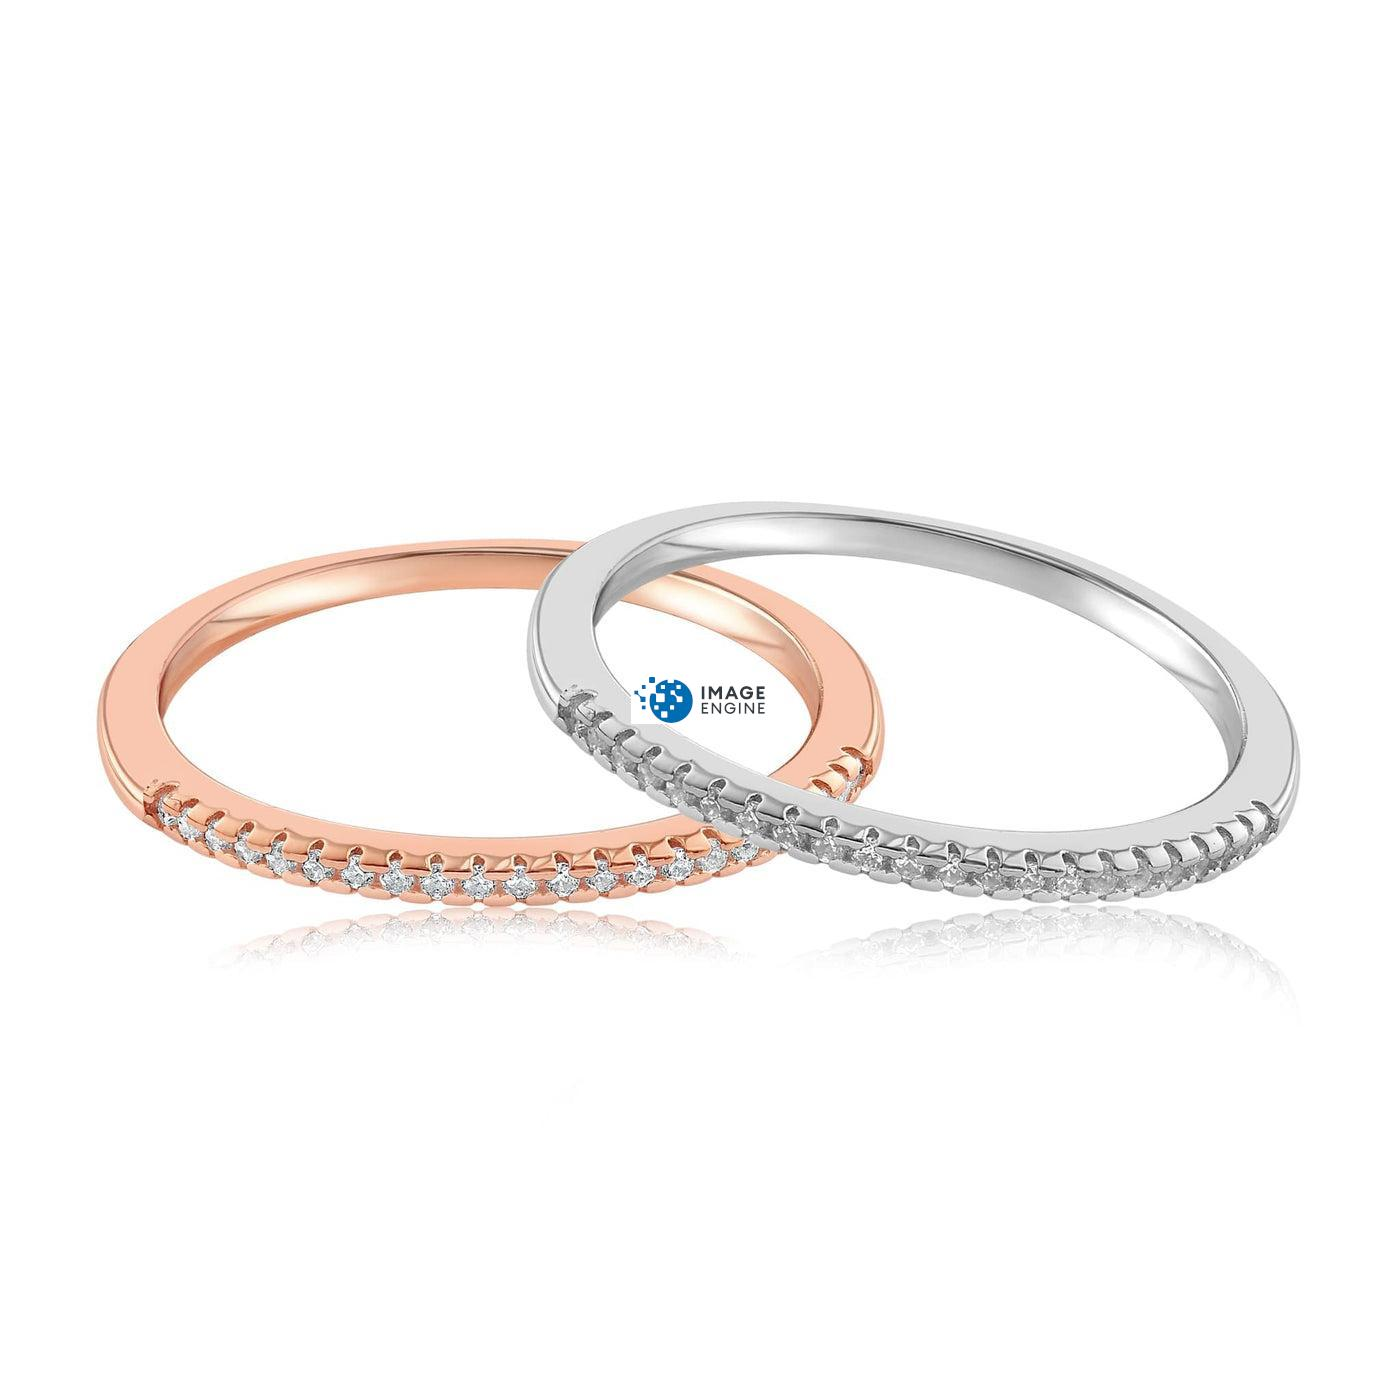 Brianna Bezel Ring - Front View SideBy Side - 18K Rose Gold Vermeil and 925 Sterling Silver